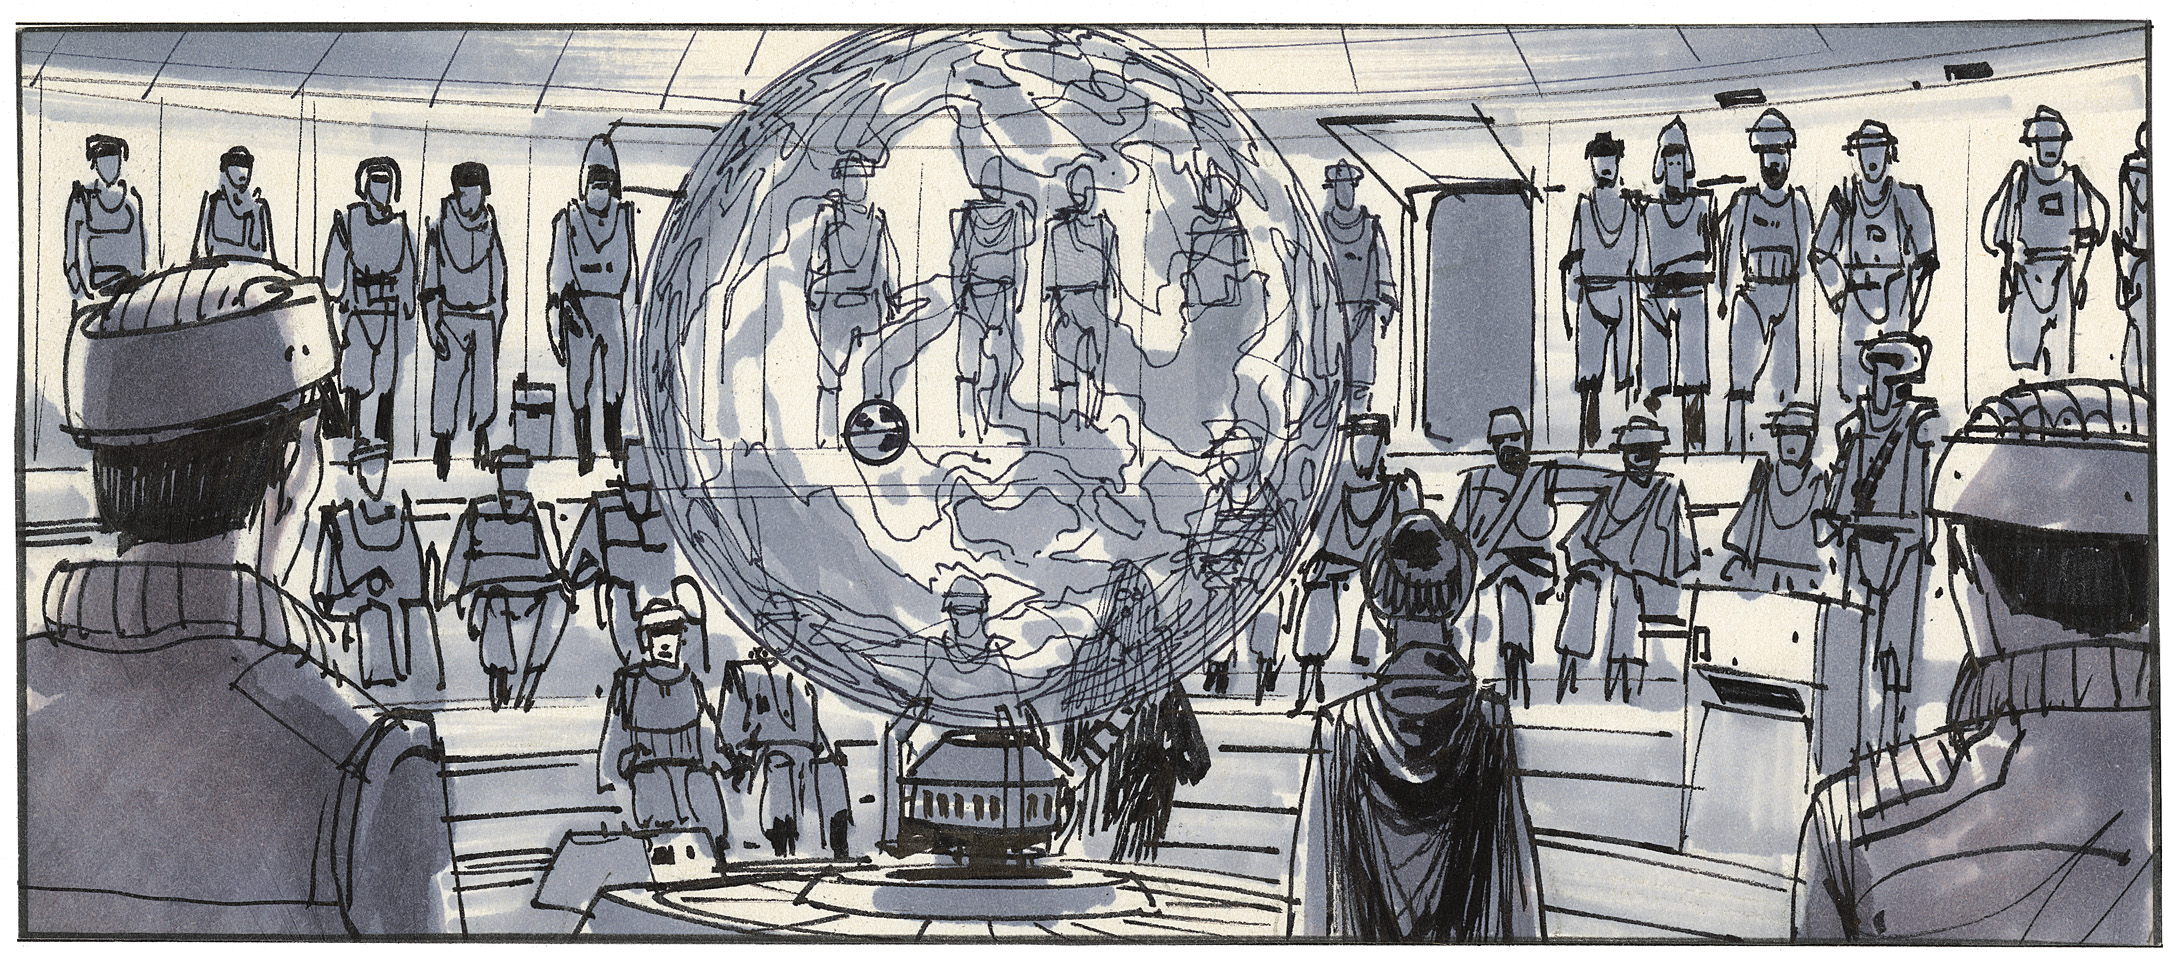 """Aboard the rebel """"headquarters frigate"""", Mon Mothma, General Nadine, and Admiral Ackbar explain their strategy for destroying the second Death Star. - Joe Johnston"""